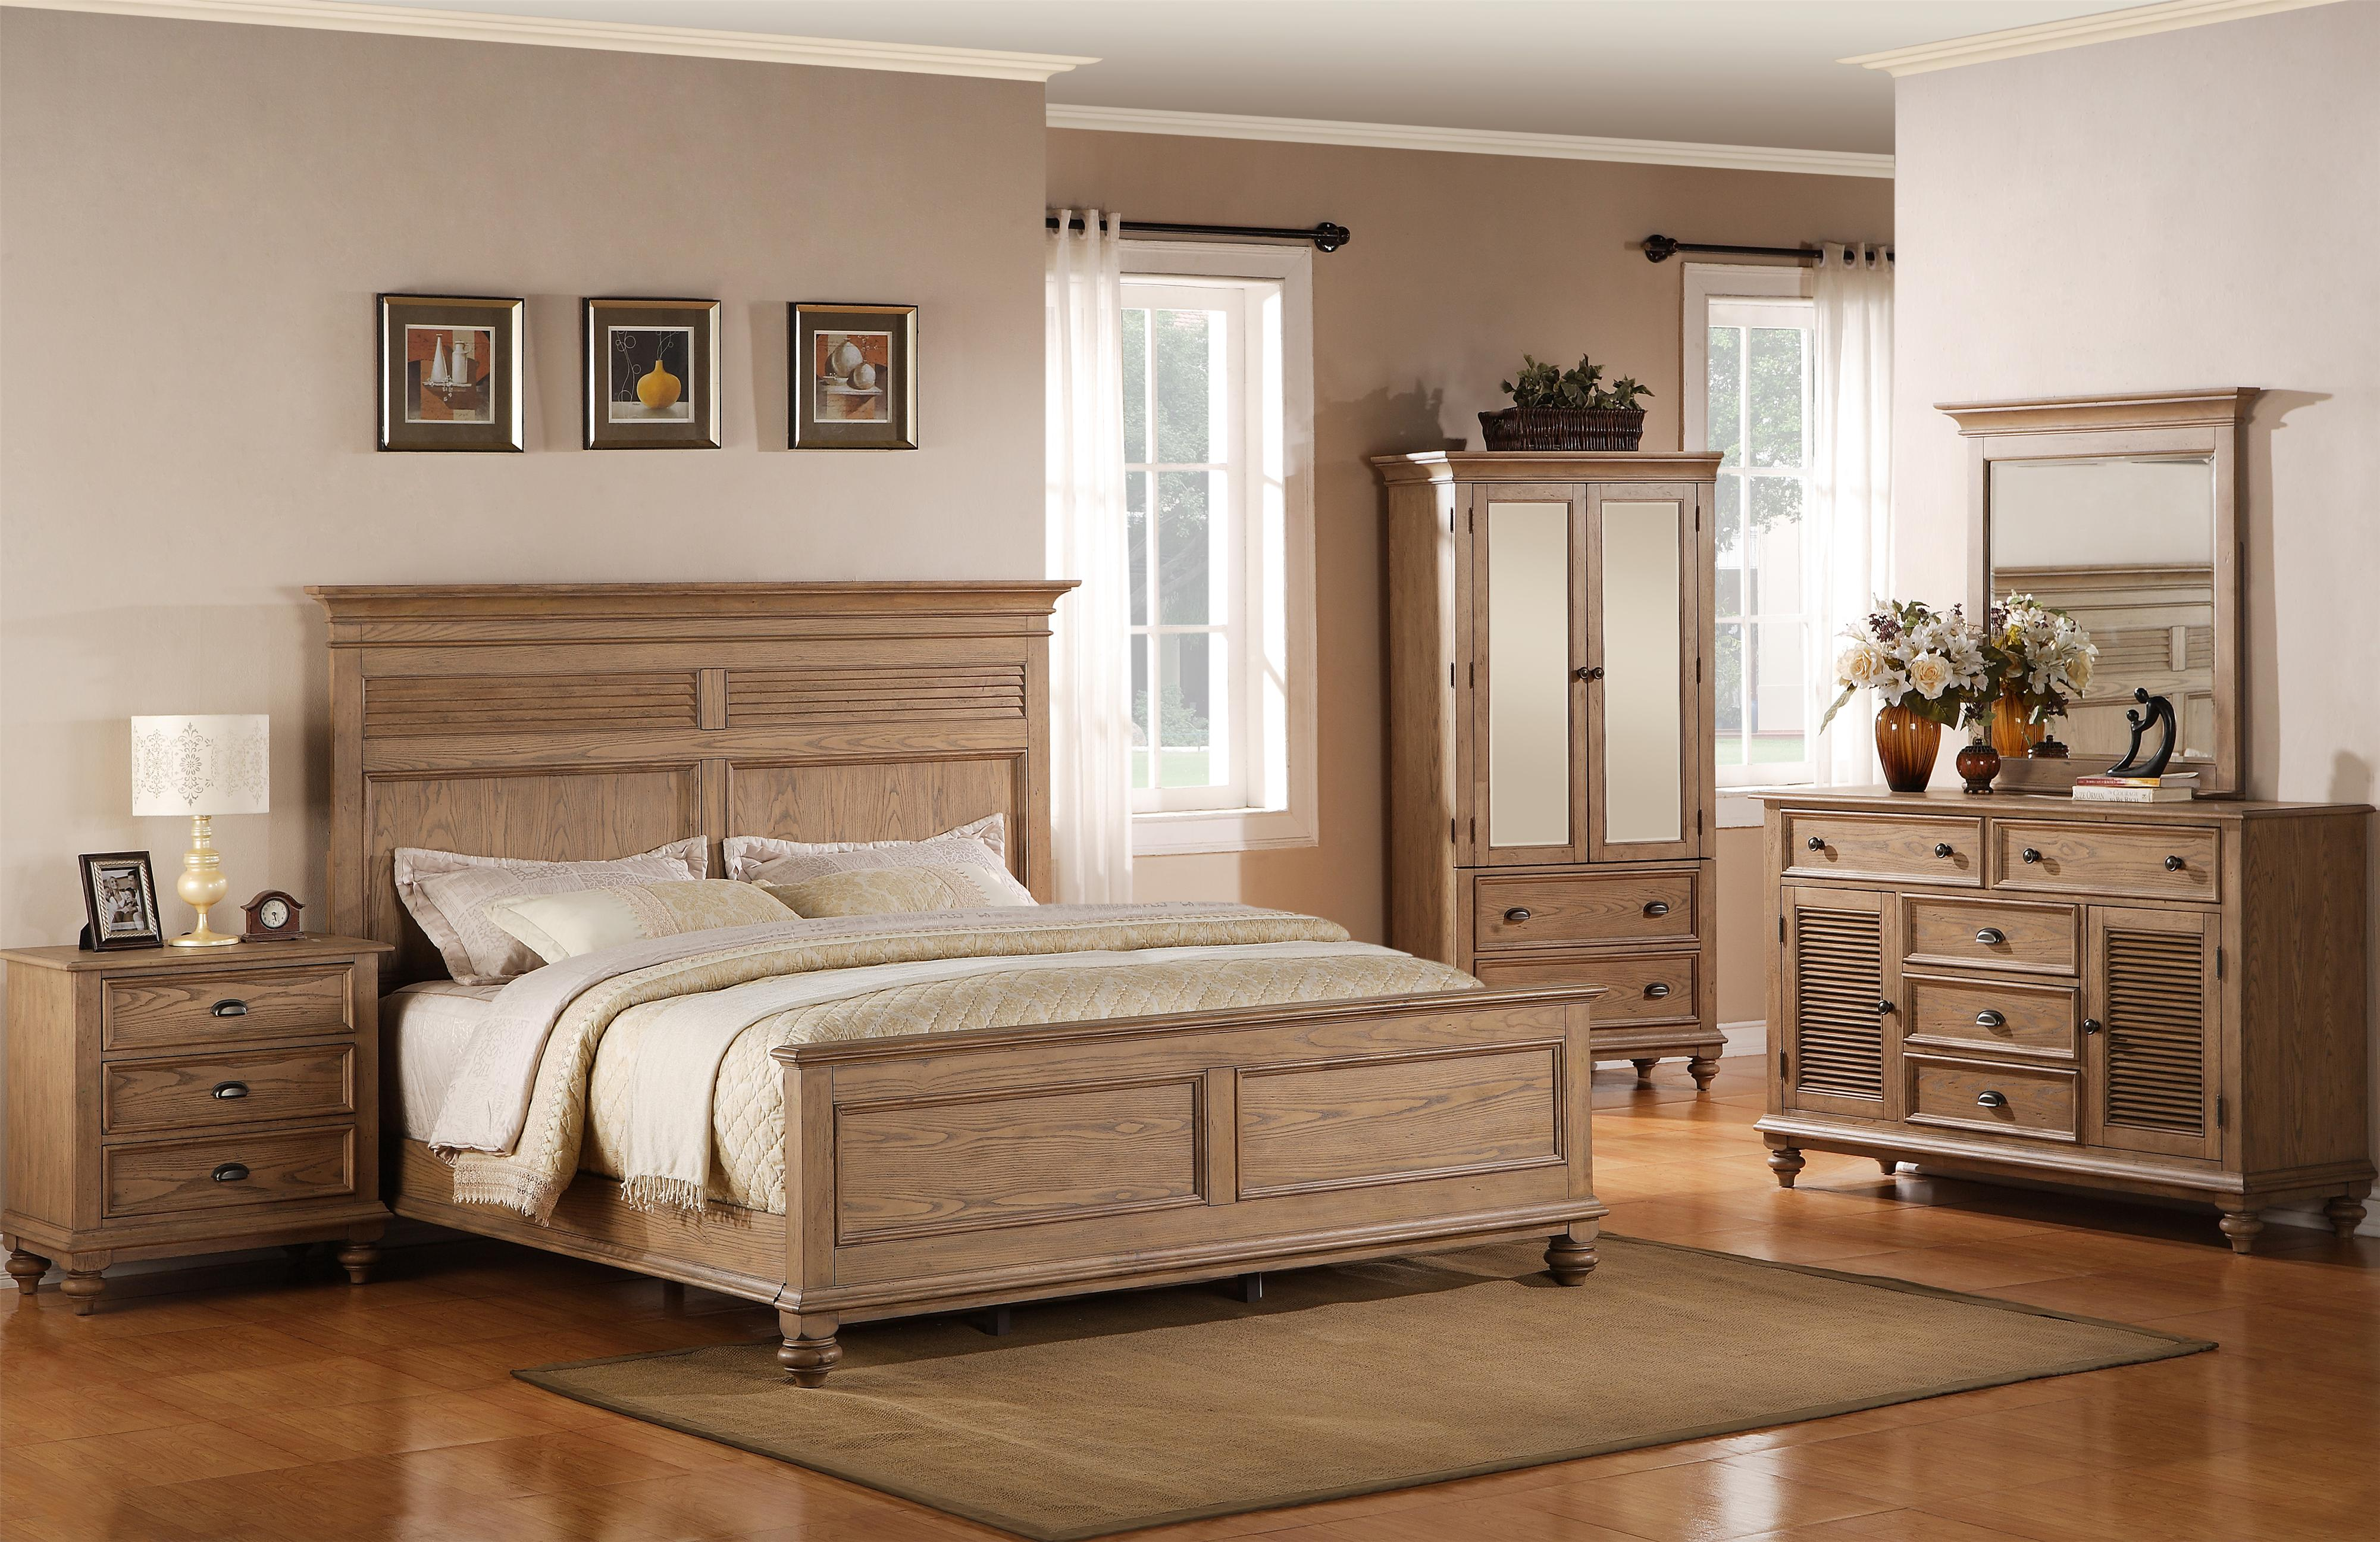 Coventry 32400 By Riverside Furniture Hudson S Furniture Riverside Furniture Coventry Dealer